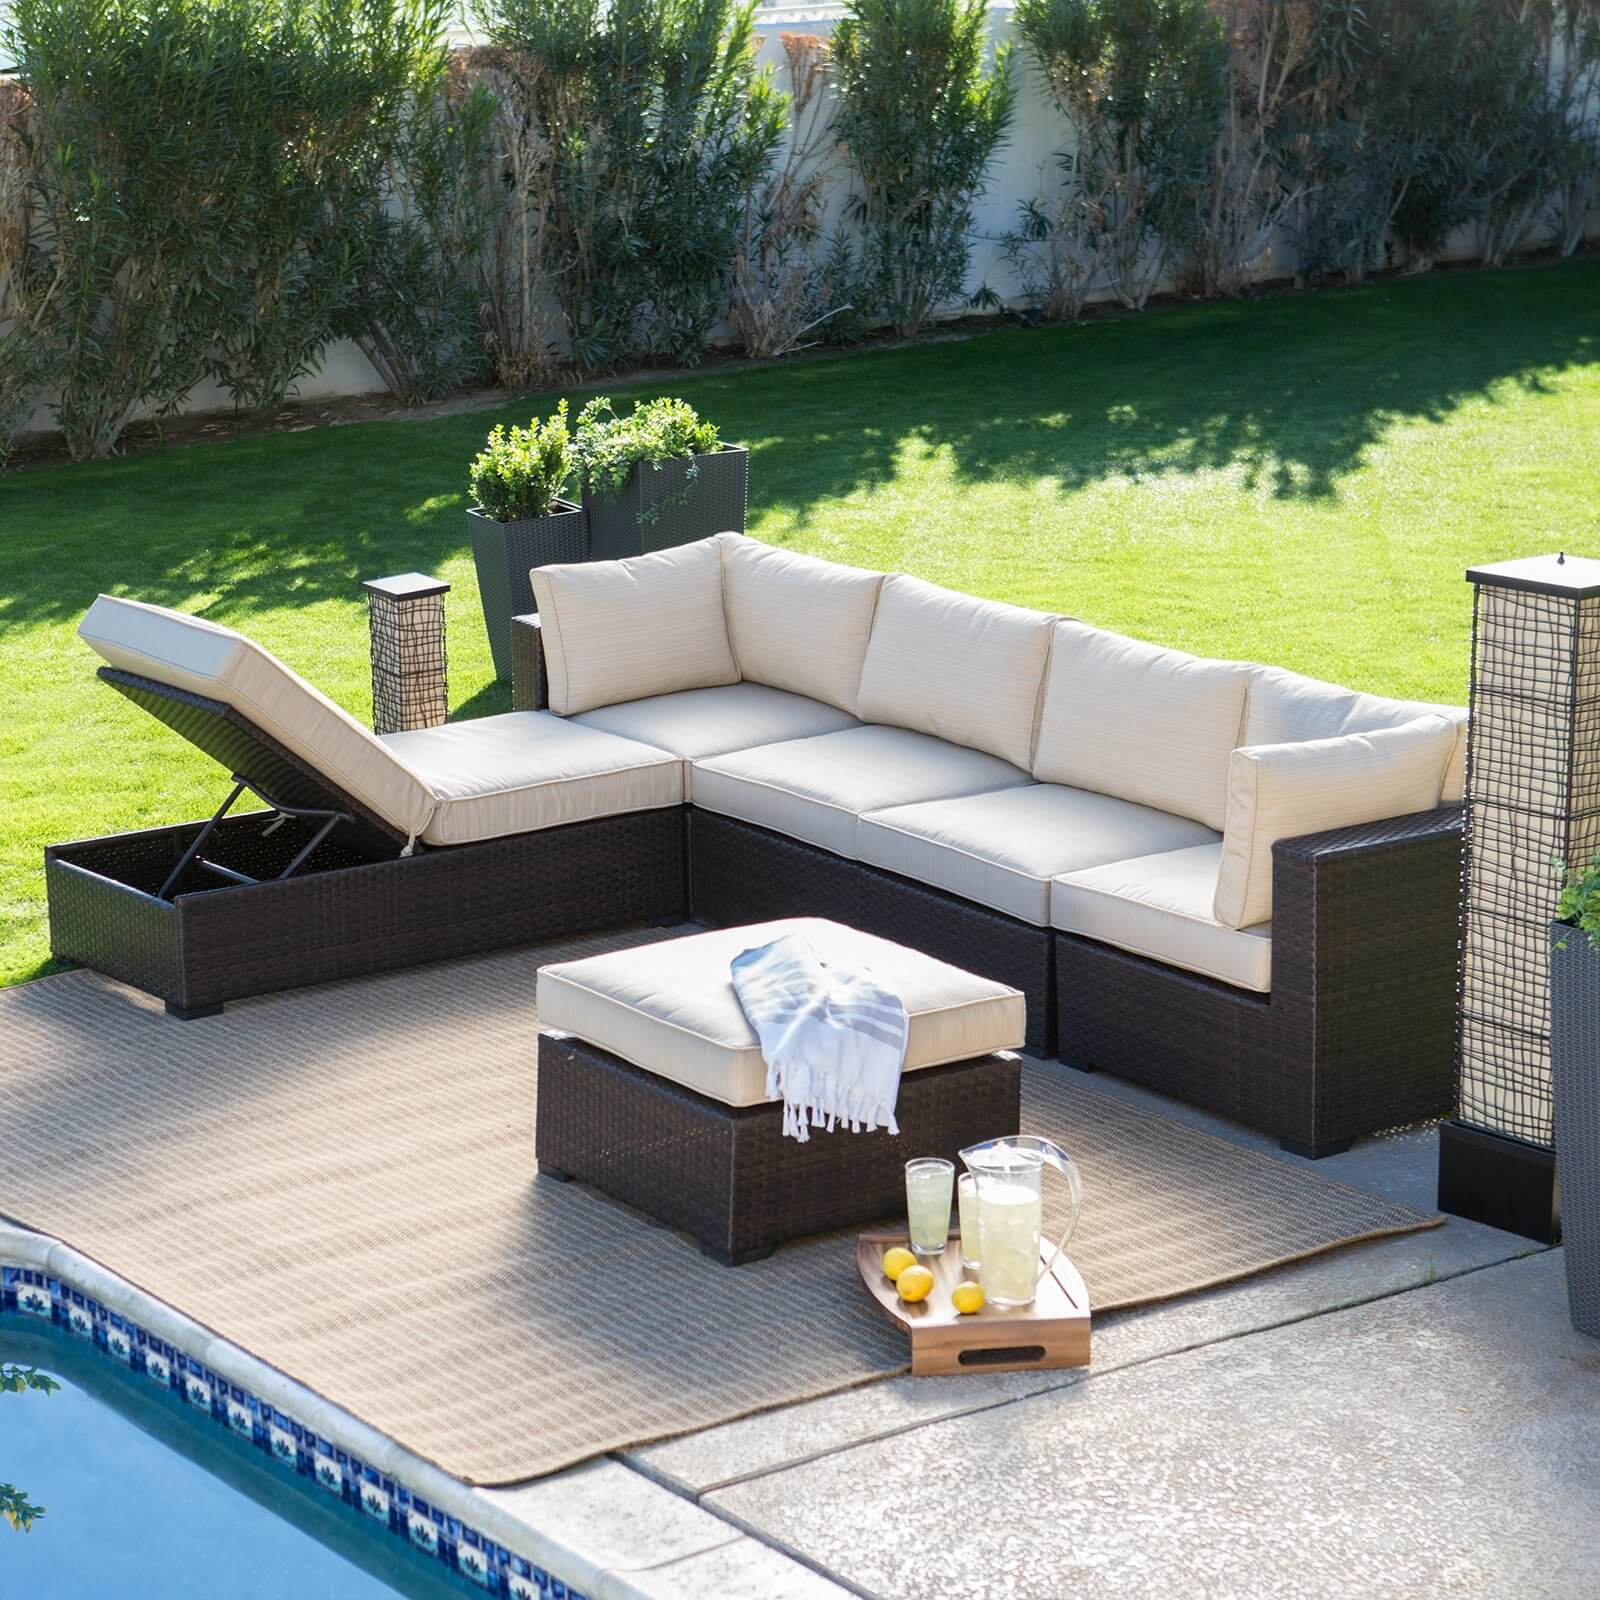 25 awesome modern brown all weather outdoor patio sectionals. Black Bedroom Furniture Sets. Home Design Ideas